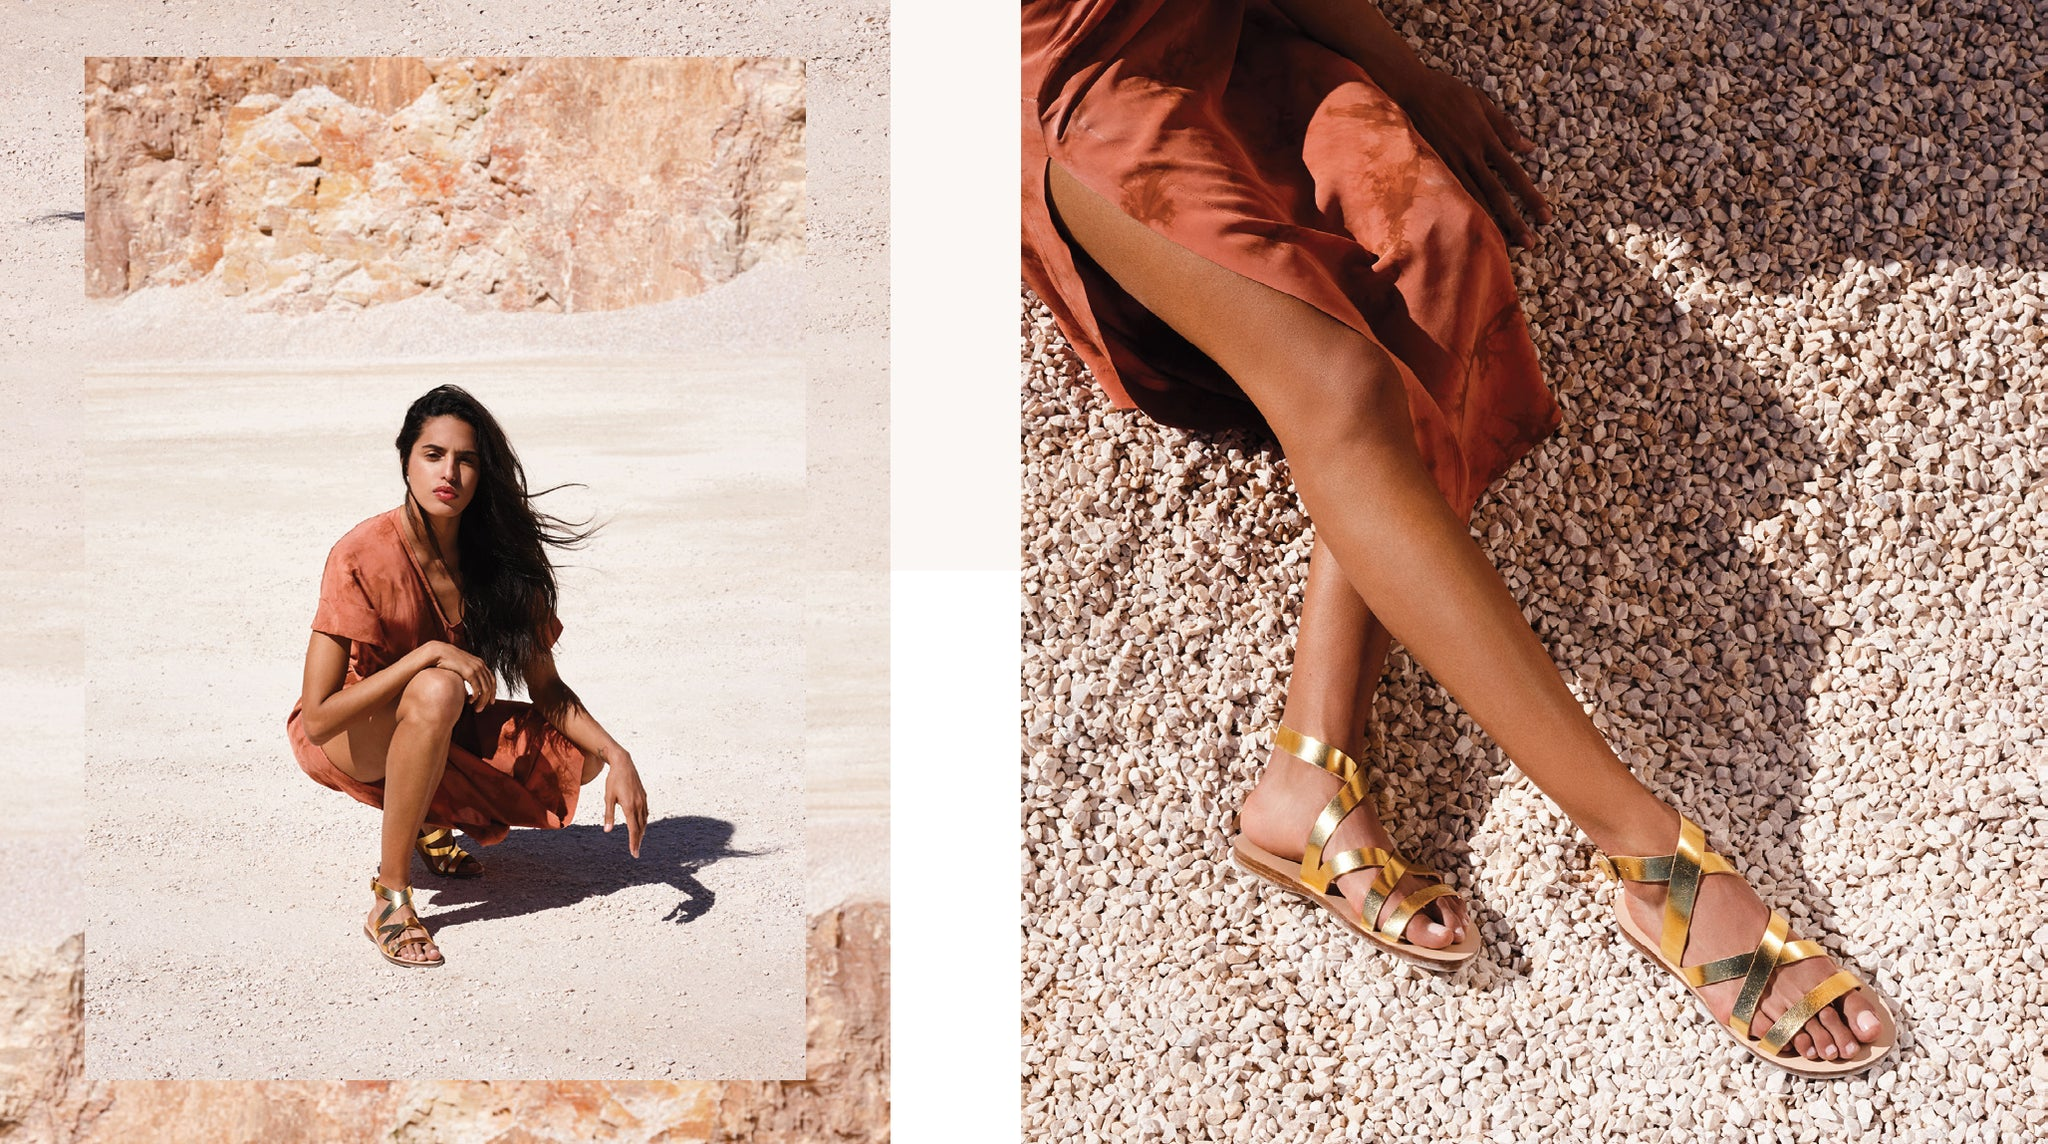 Athina wearing greek leather sandals in stone quarry. Sandal photoshoot.